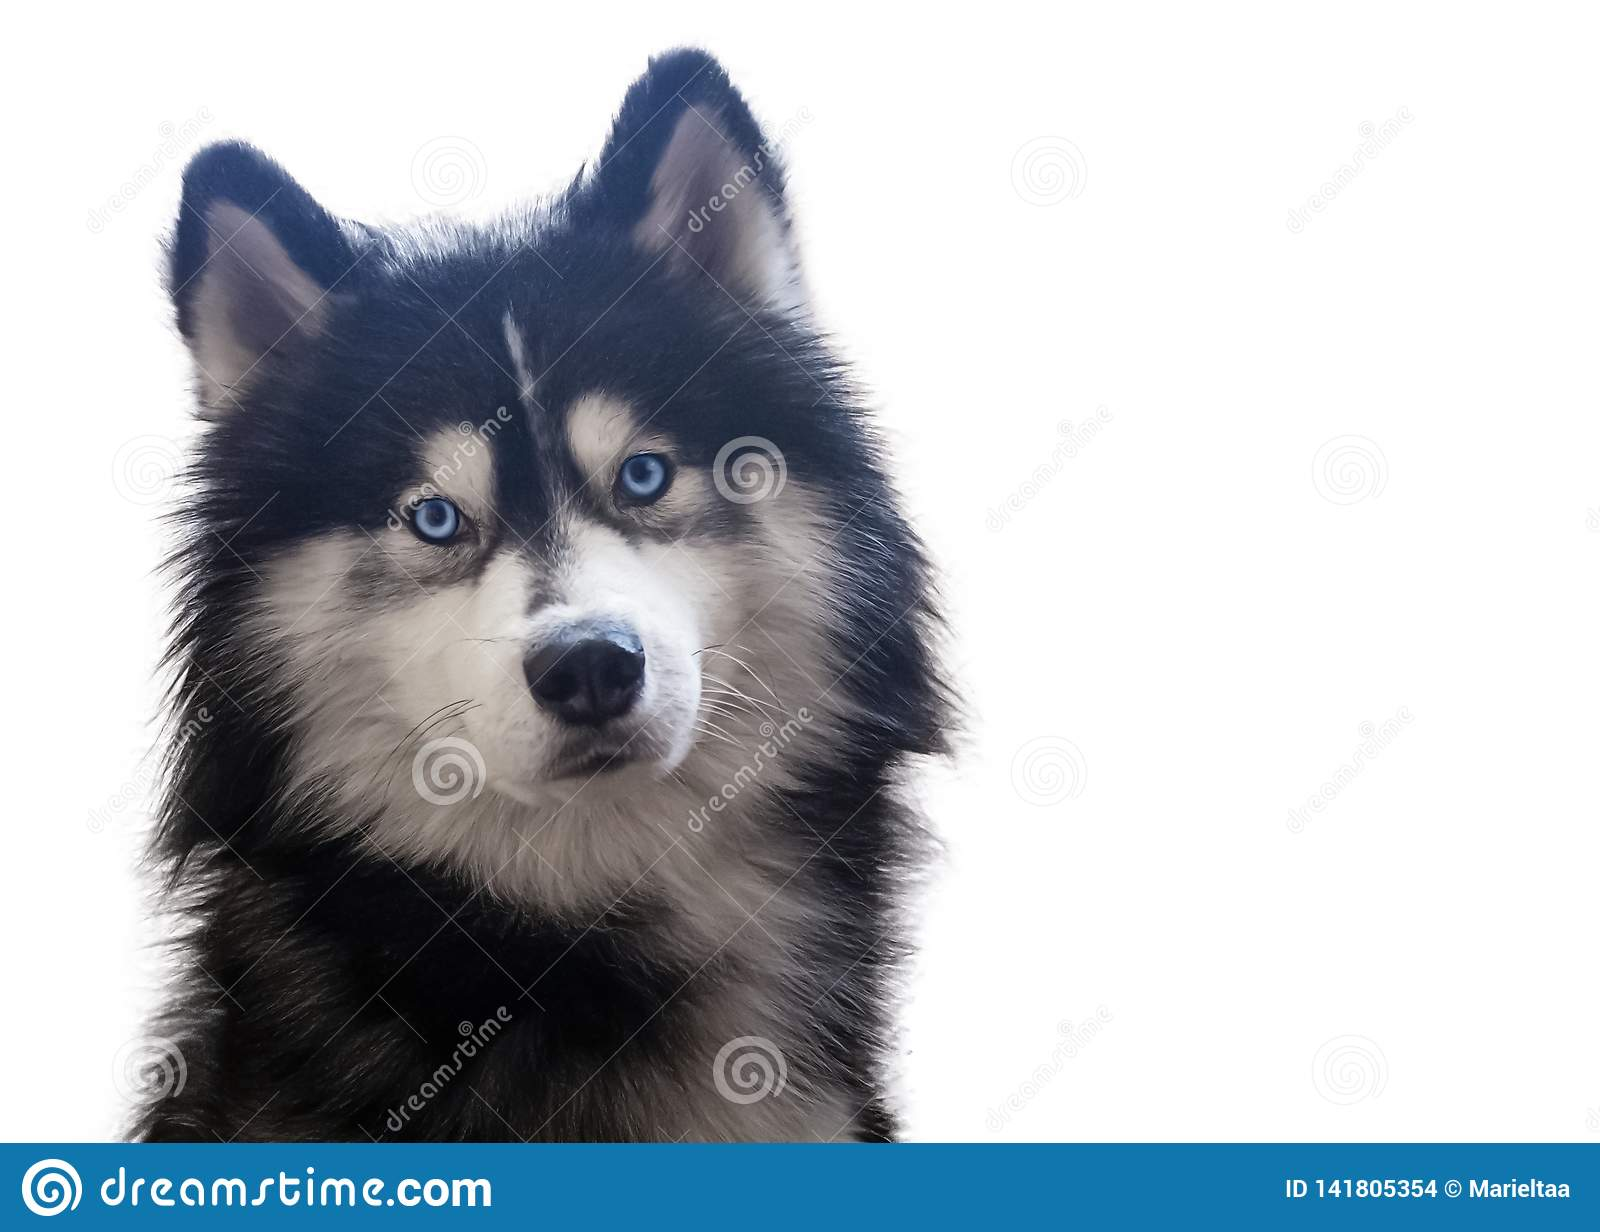 Adorable siberian husky sitting and looks at camera with his bright blue eyes. Isolated